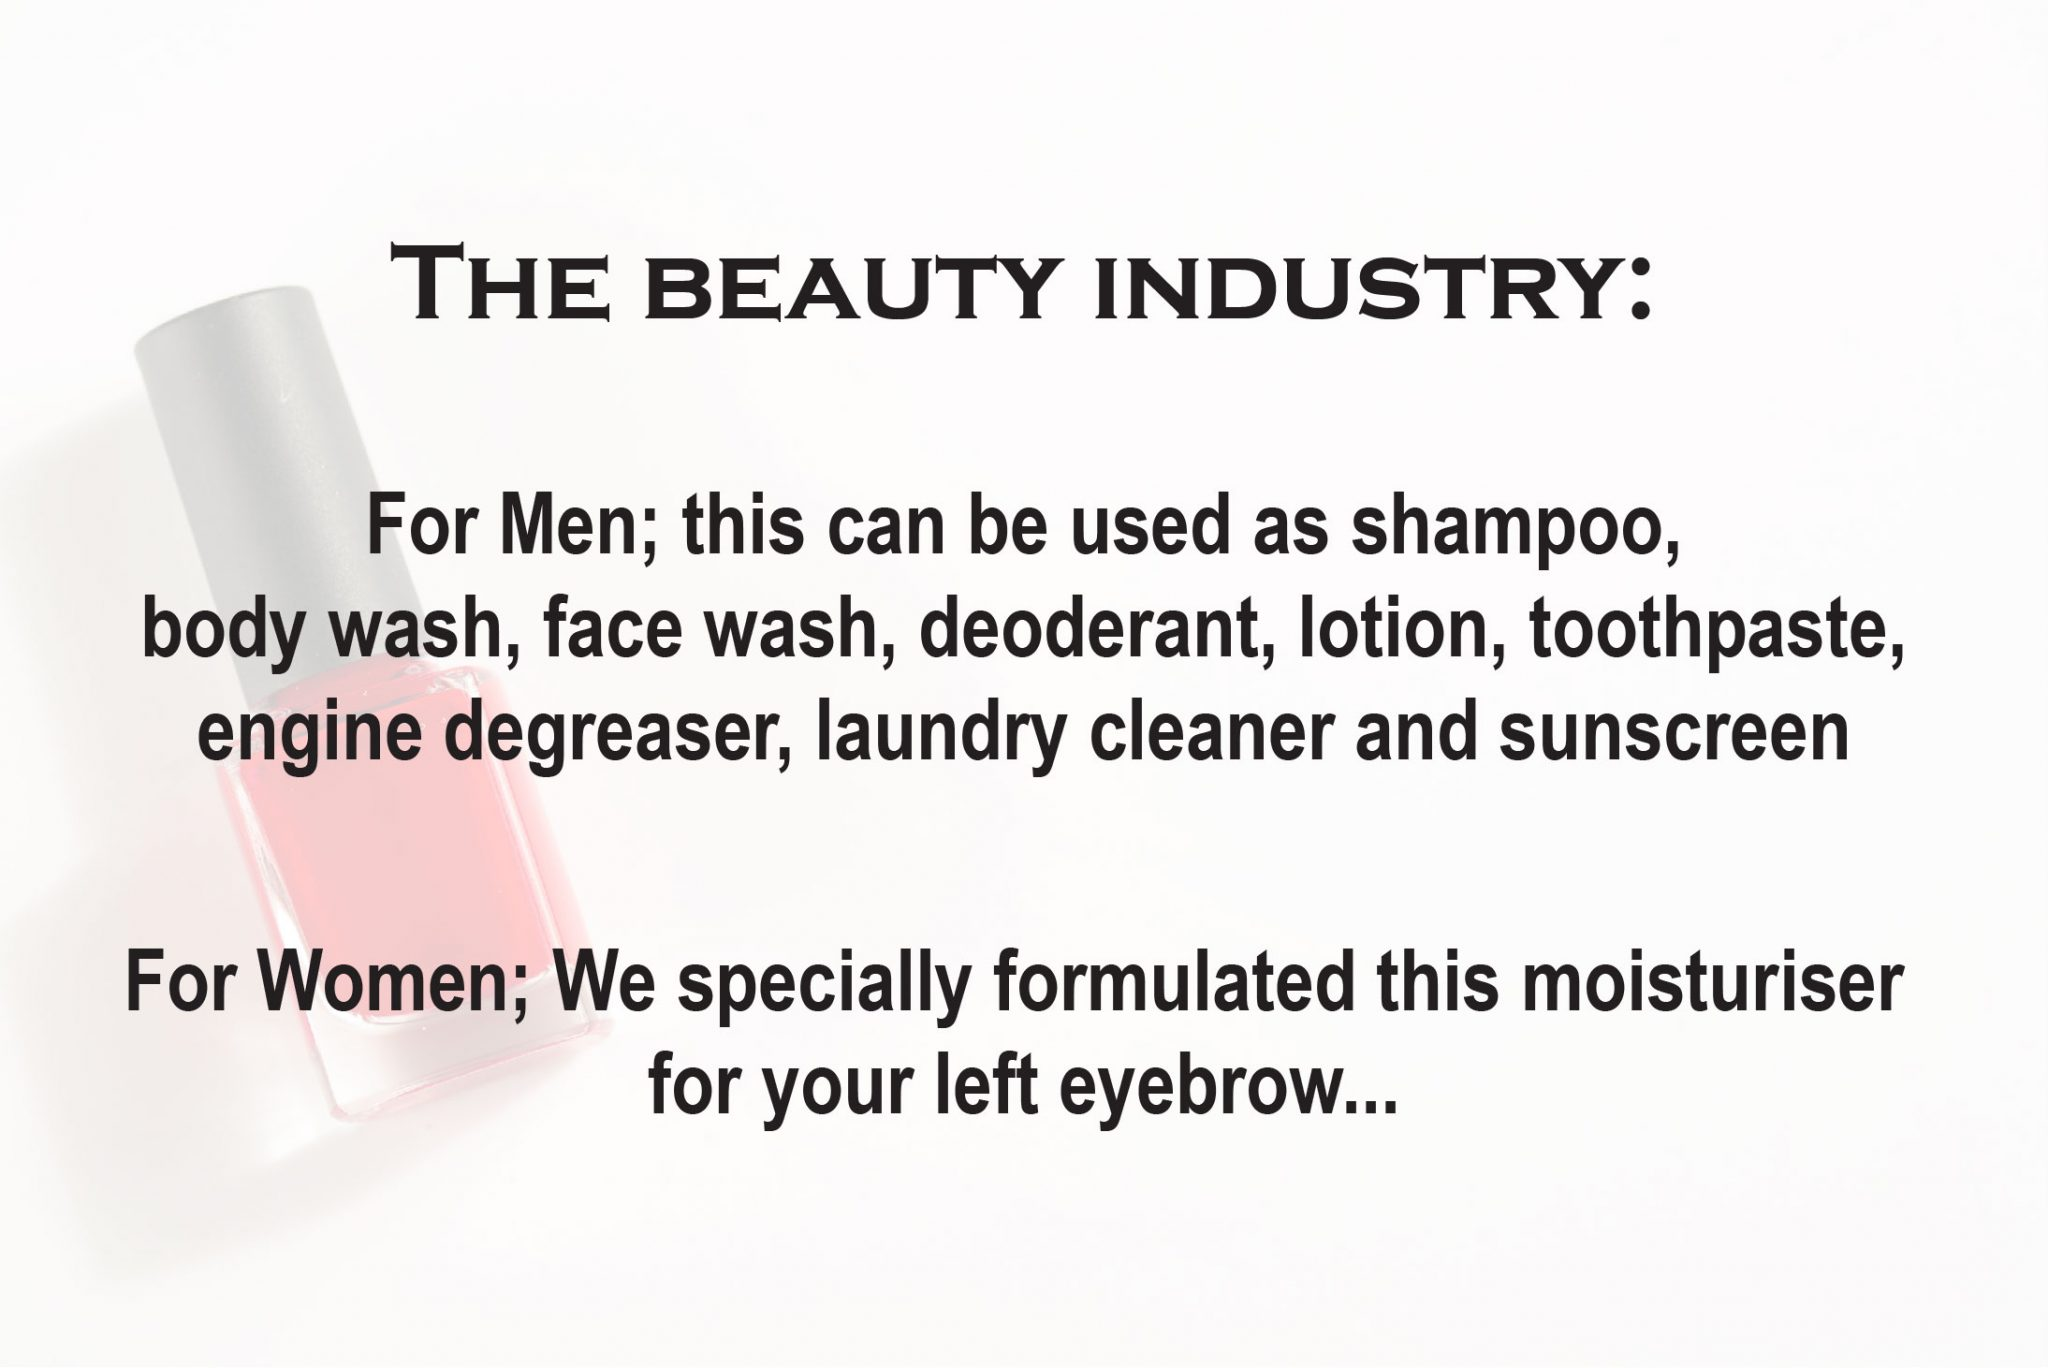 The Beauty Industry: For Men; this can be used as shampoo, body wash, face wash, deodorant, lotion, toothpaste, engine degreaser, laundry detergent, and sunscreen. For Women; We specially formulated this moisturizer for your left eyebrow